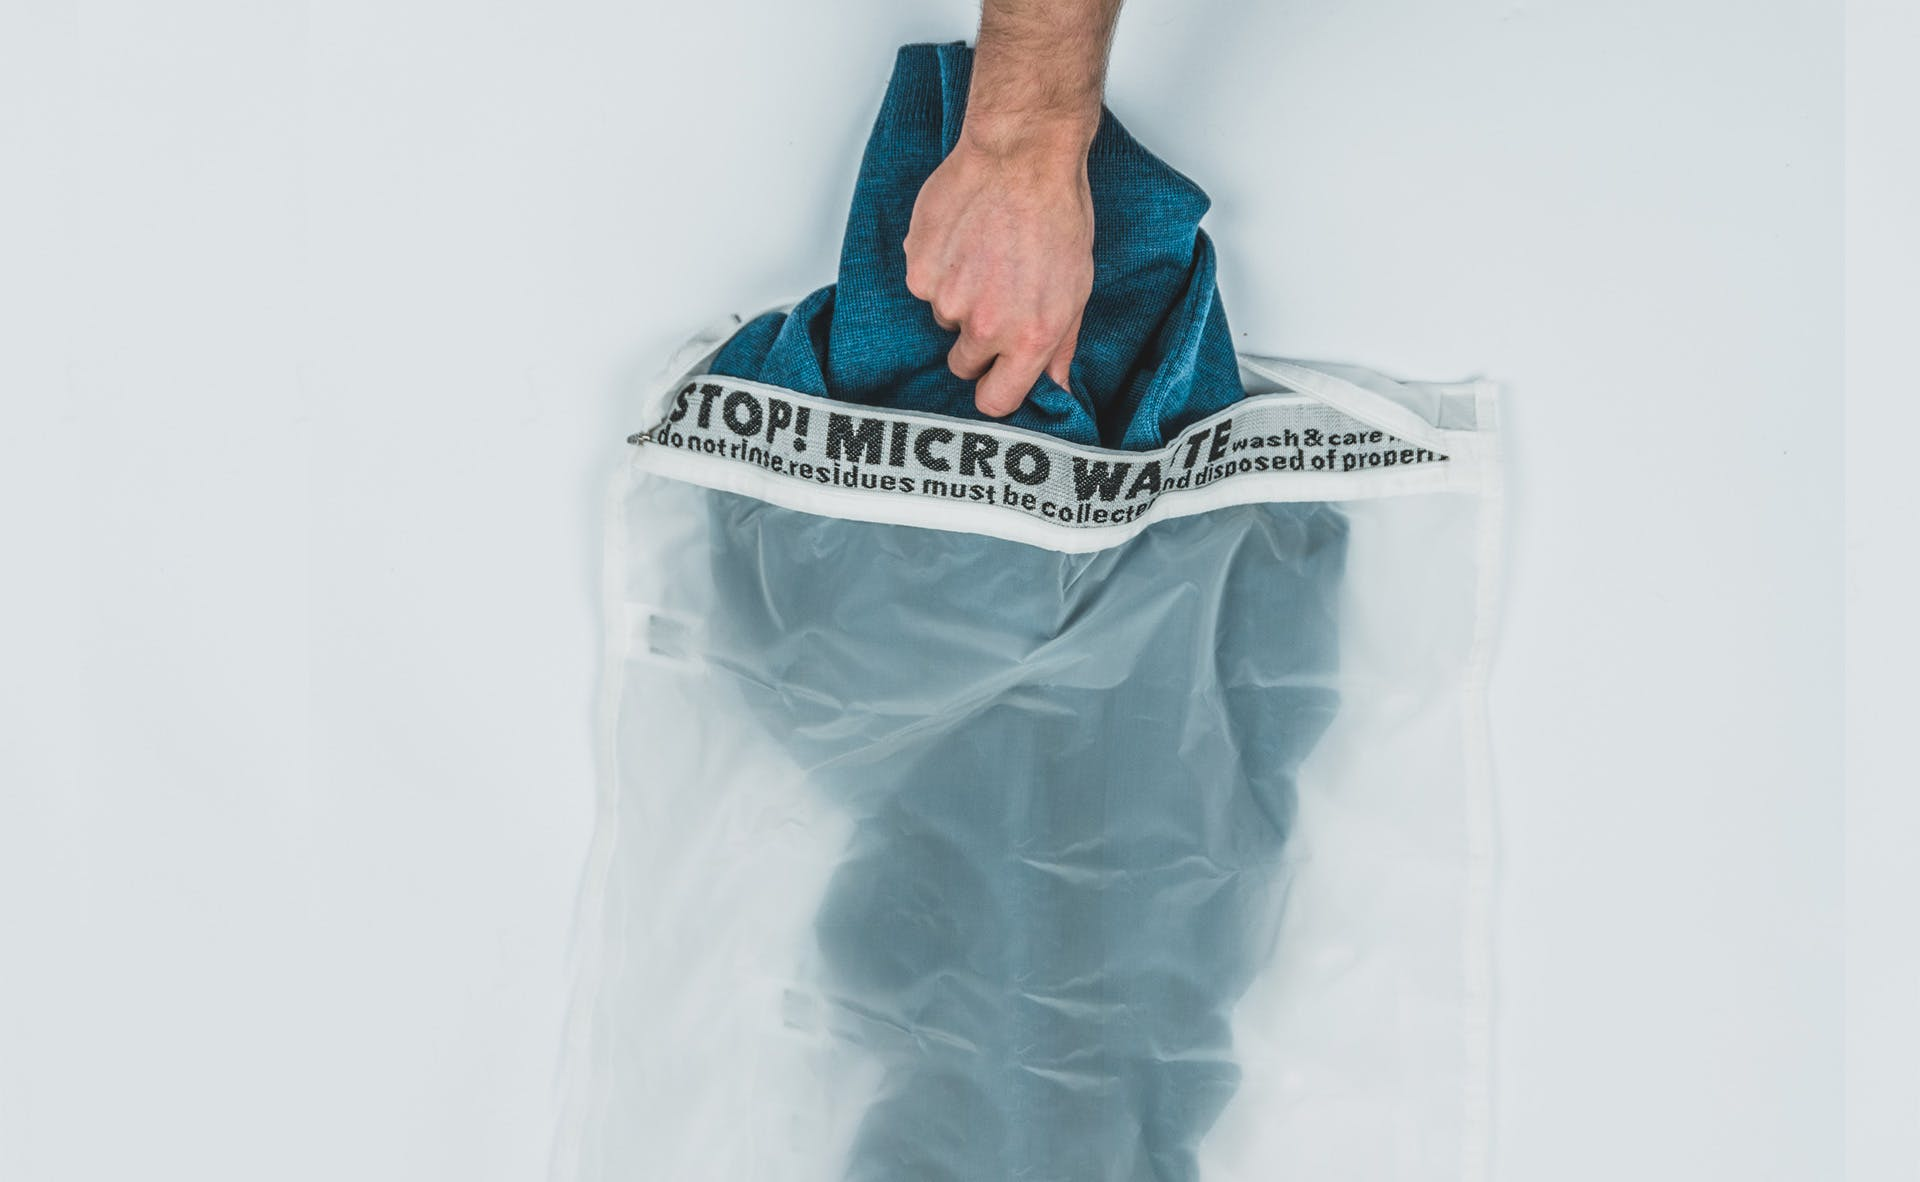 A bag like this traps microfibres!